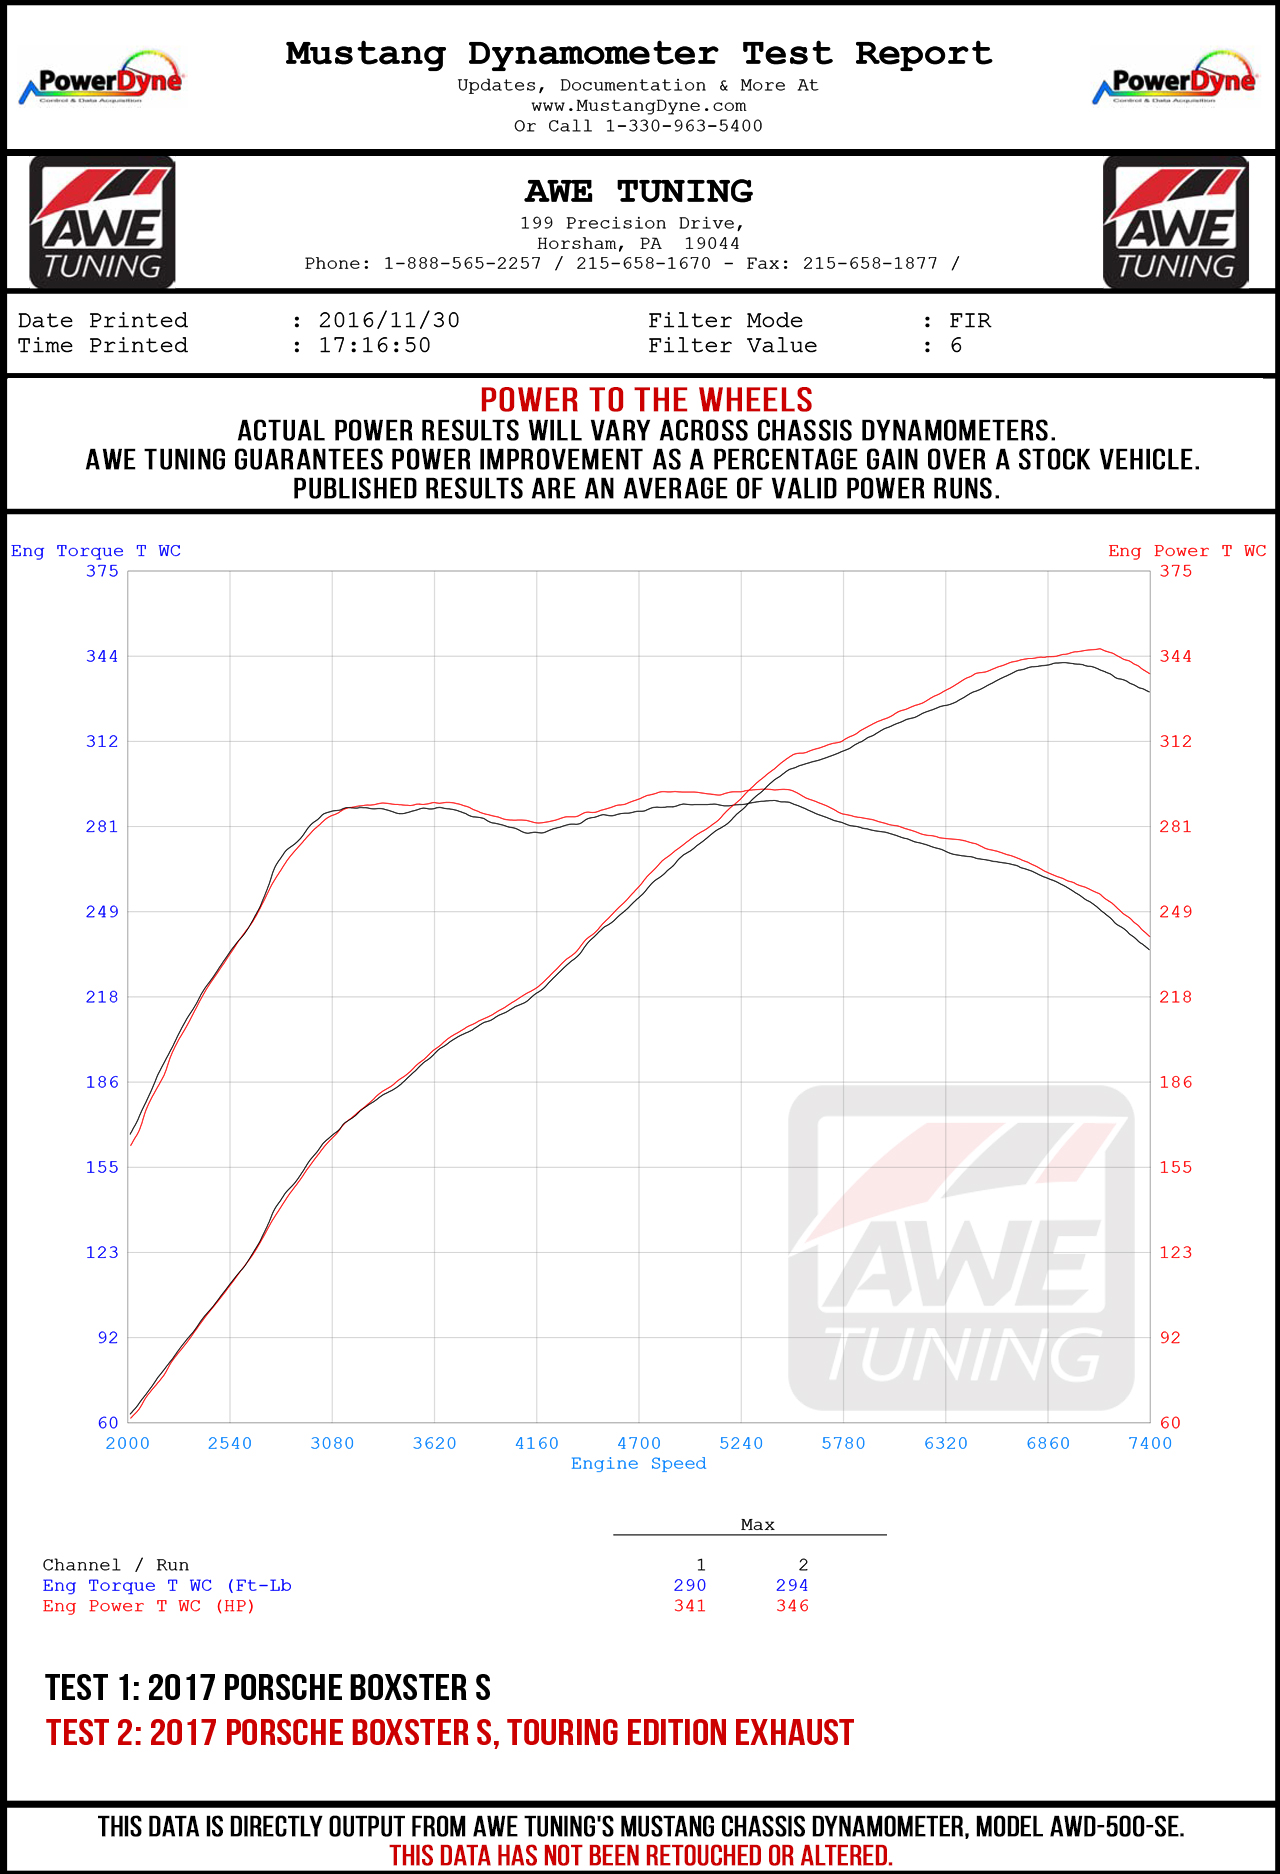 Awe Tuning Porsche 718 Boxster Cayman Exhaust Suite 428i Bmw Engine Diagram Wheel Horsepower Gains For The Touring Edition System